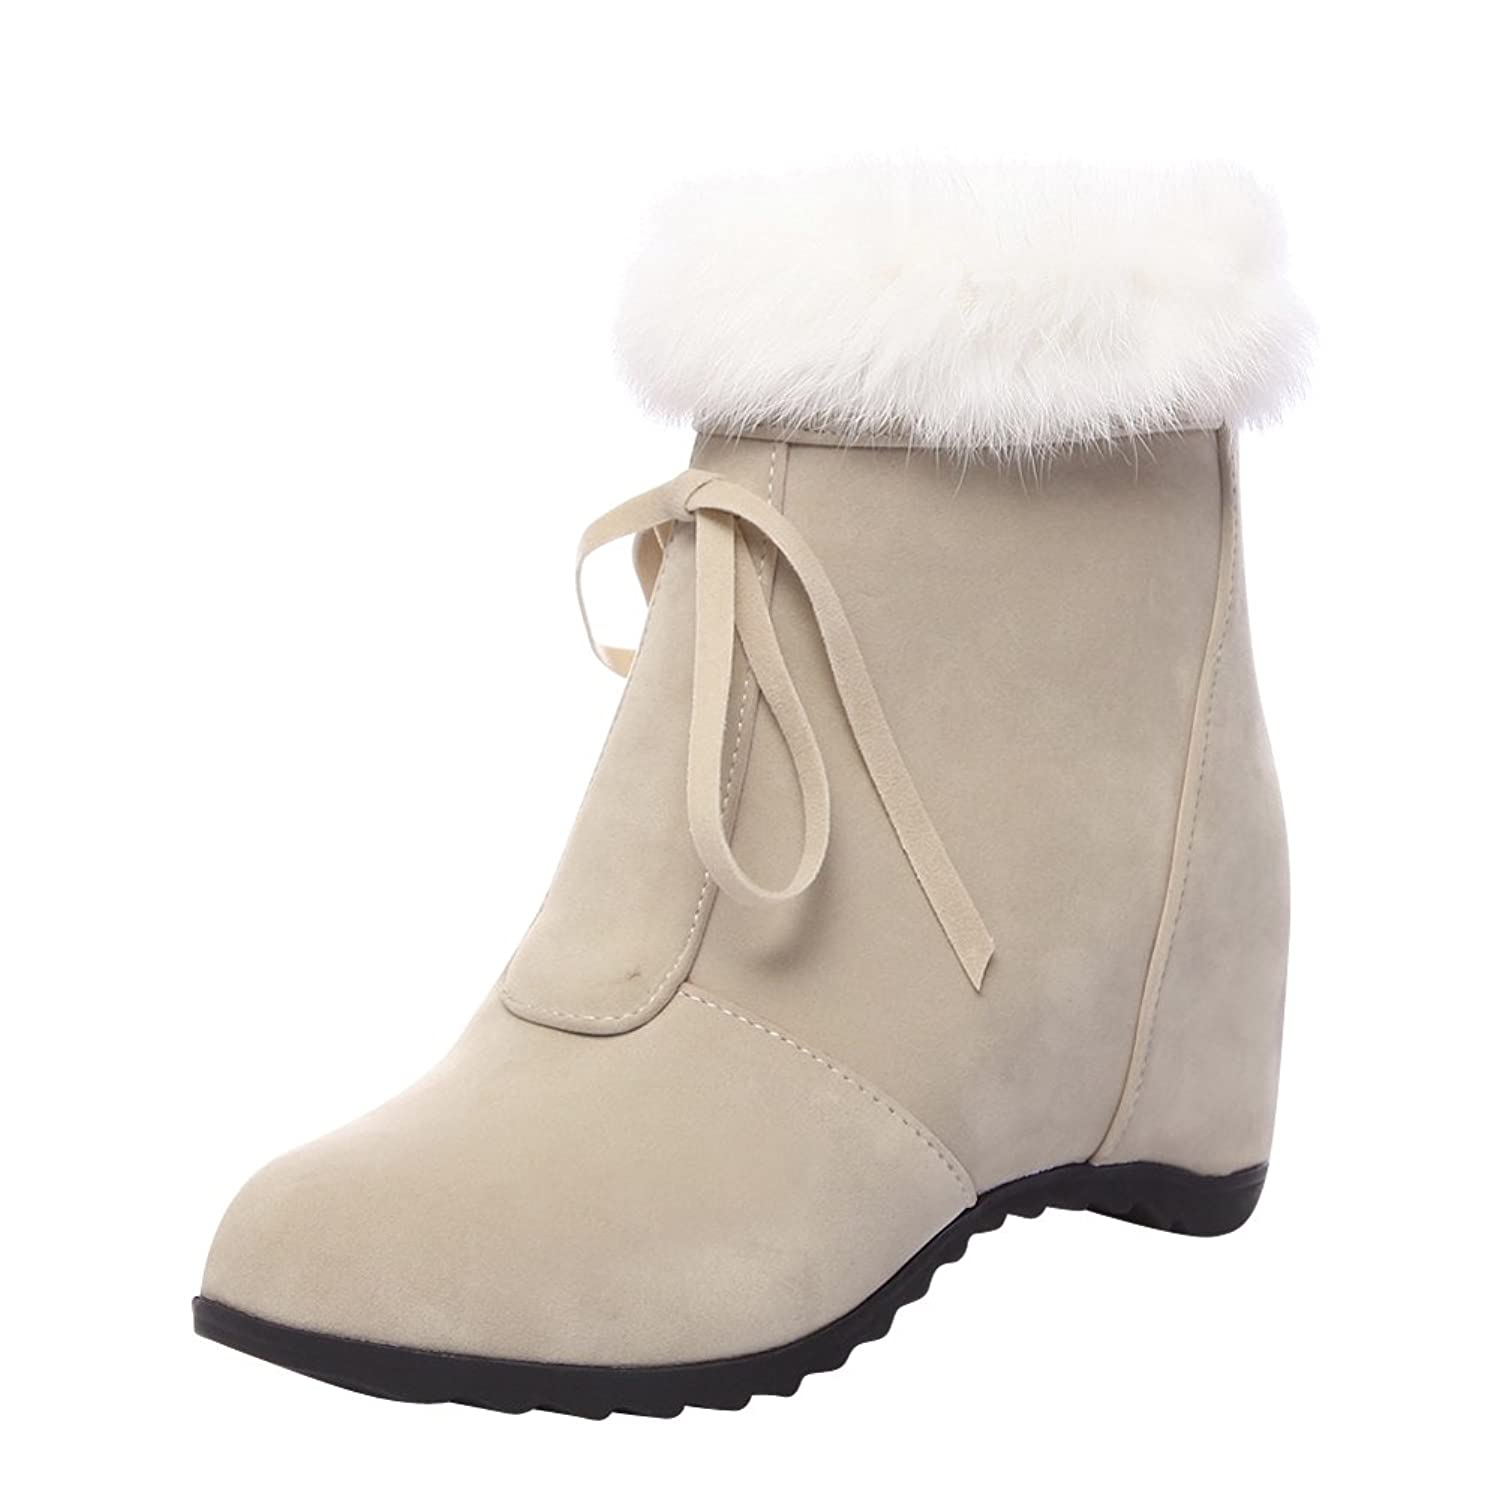 Charm Foot Women's Fashion Winter Wedges Short Snow Boots